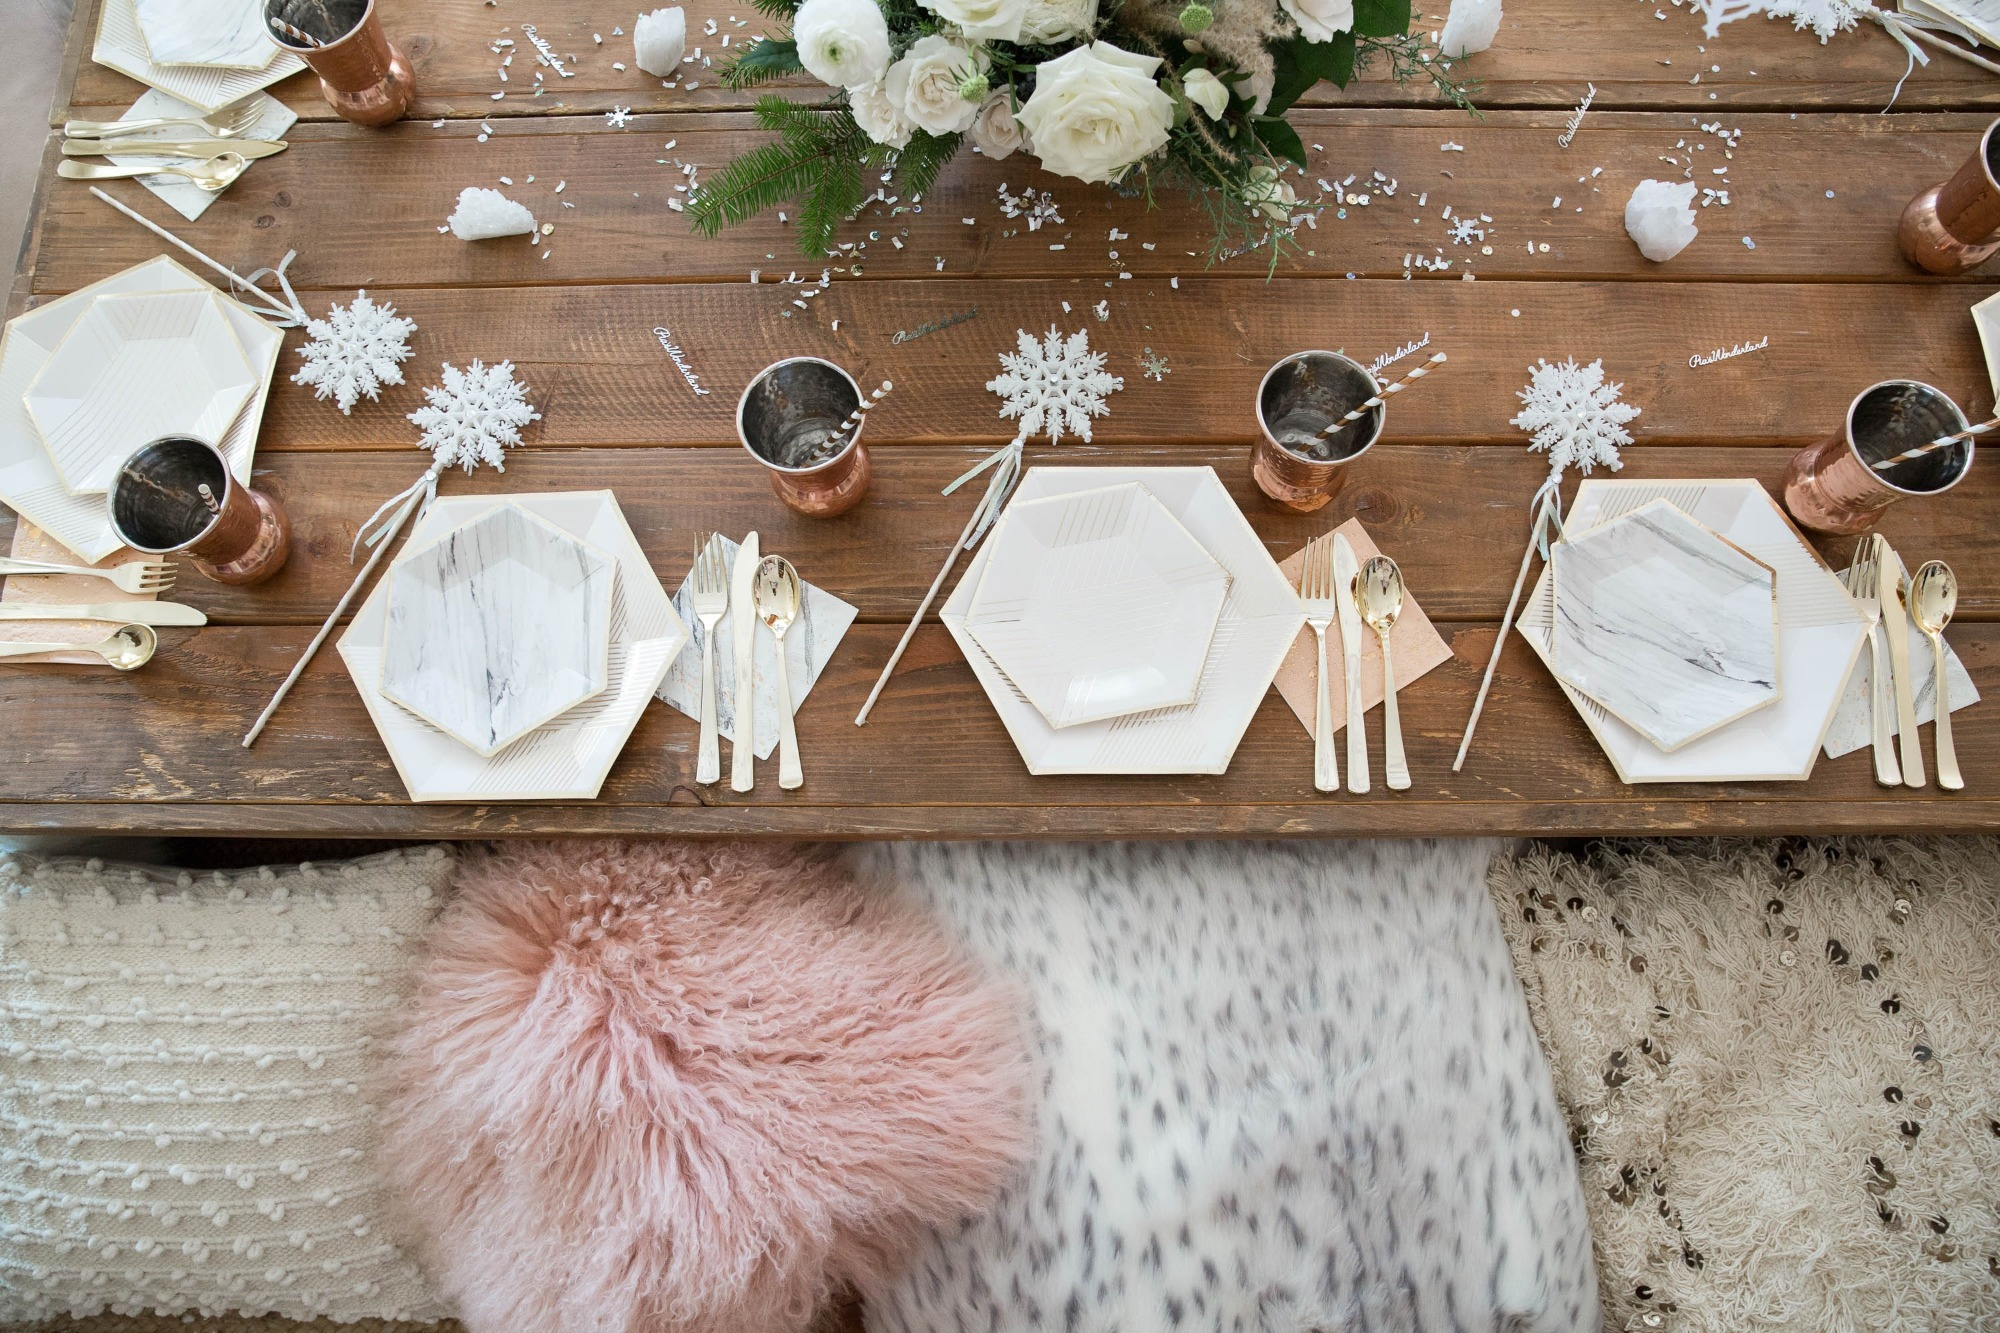 Tablescape and Place Settings from Snowy Birthday Soiree Styled by Deets & Things | Black Twine